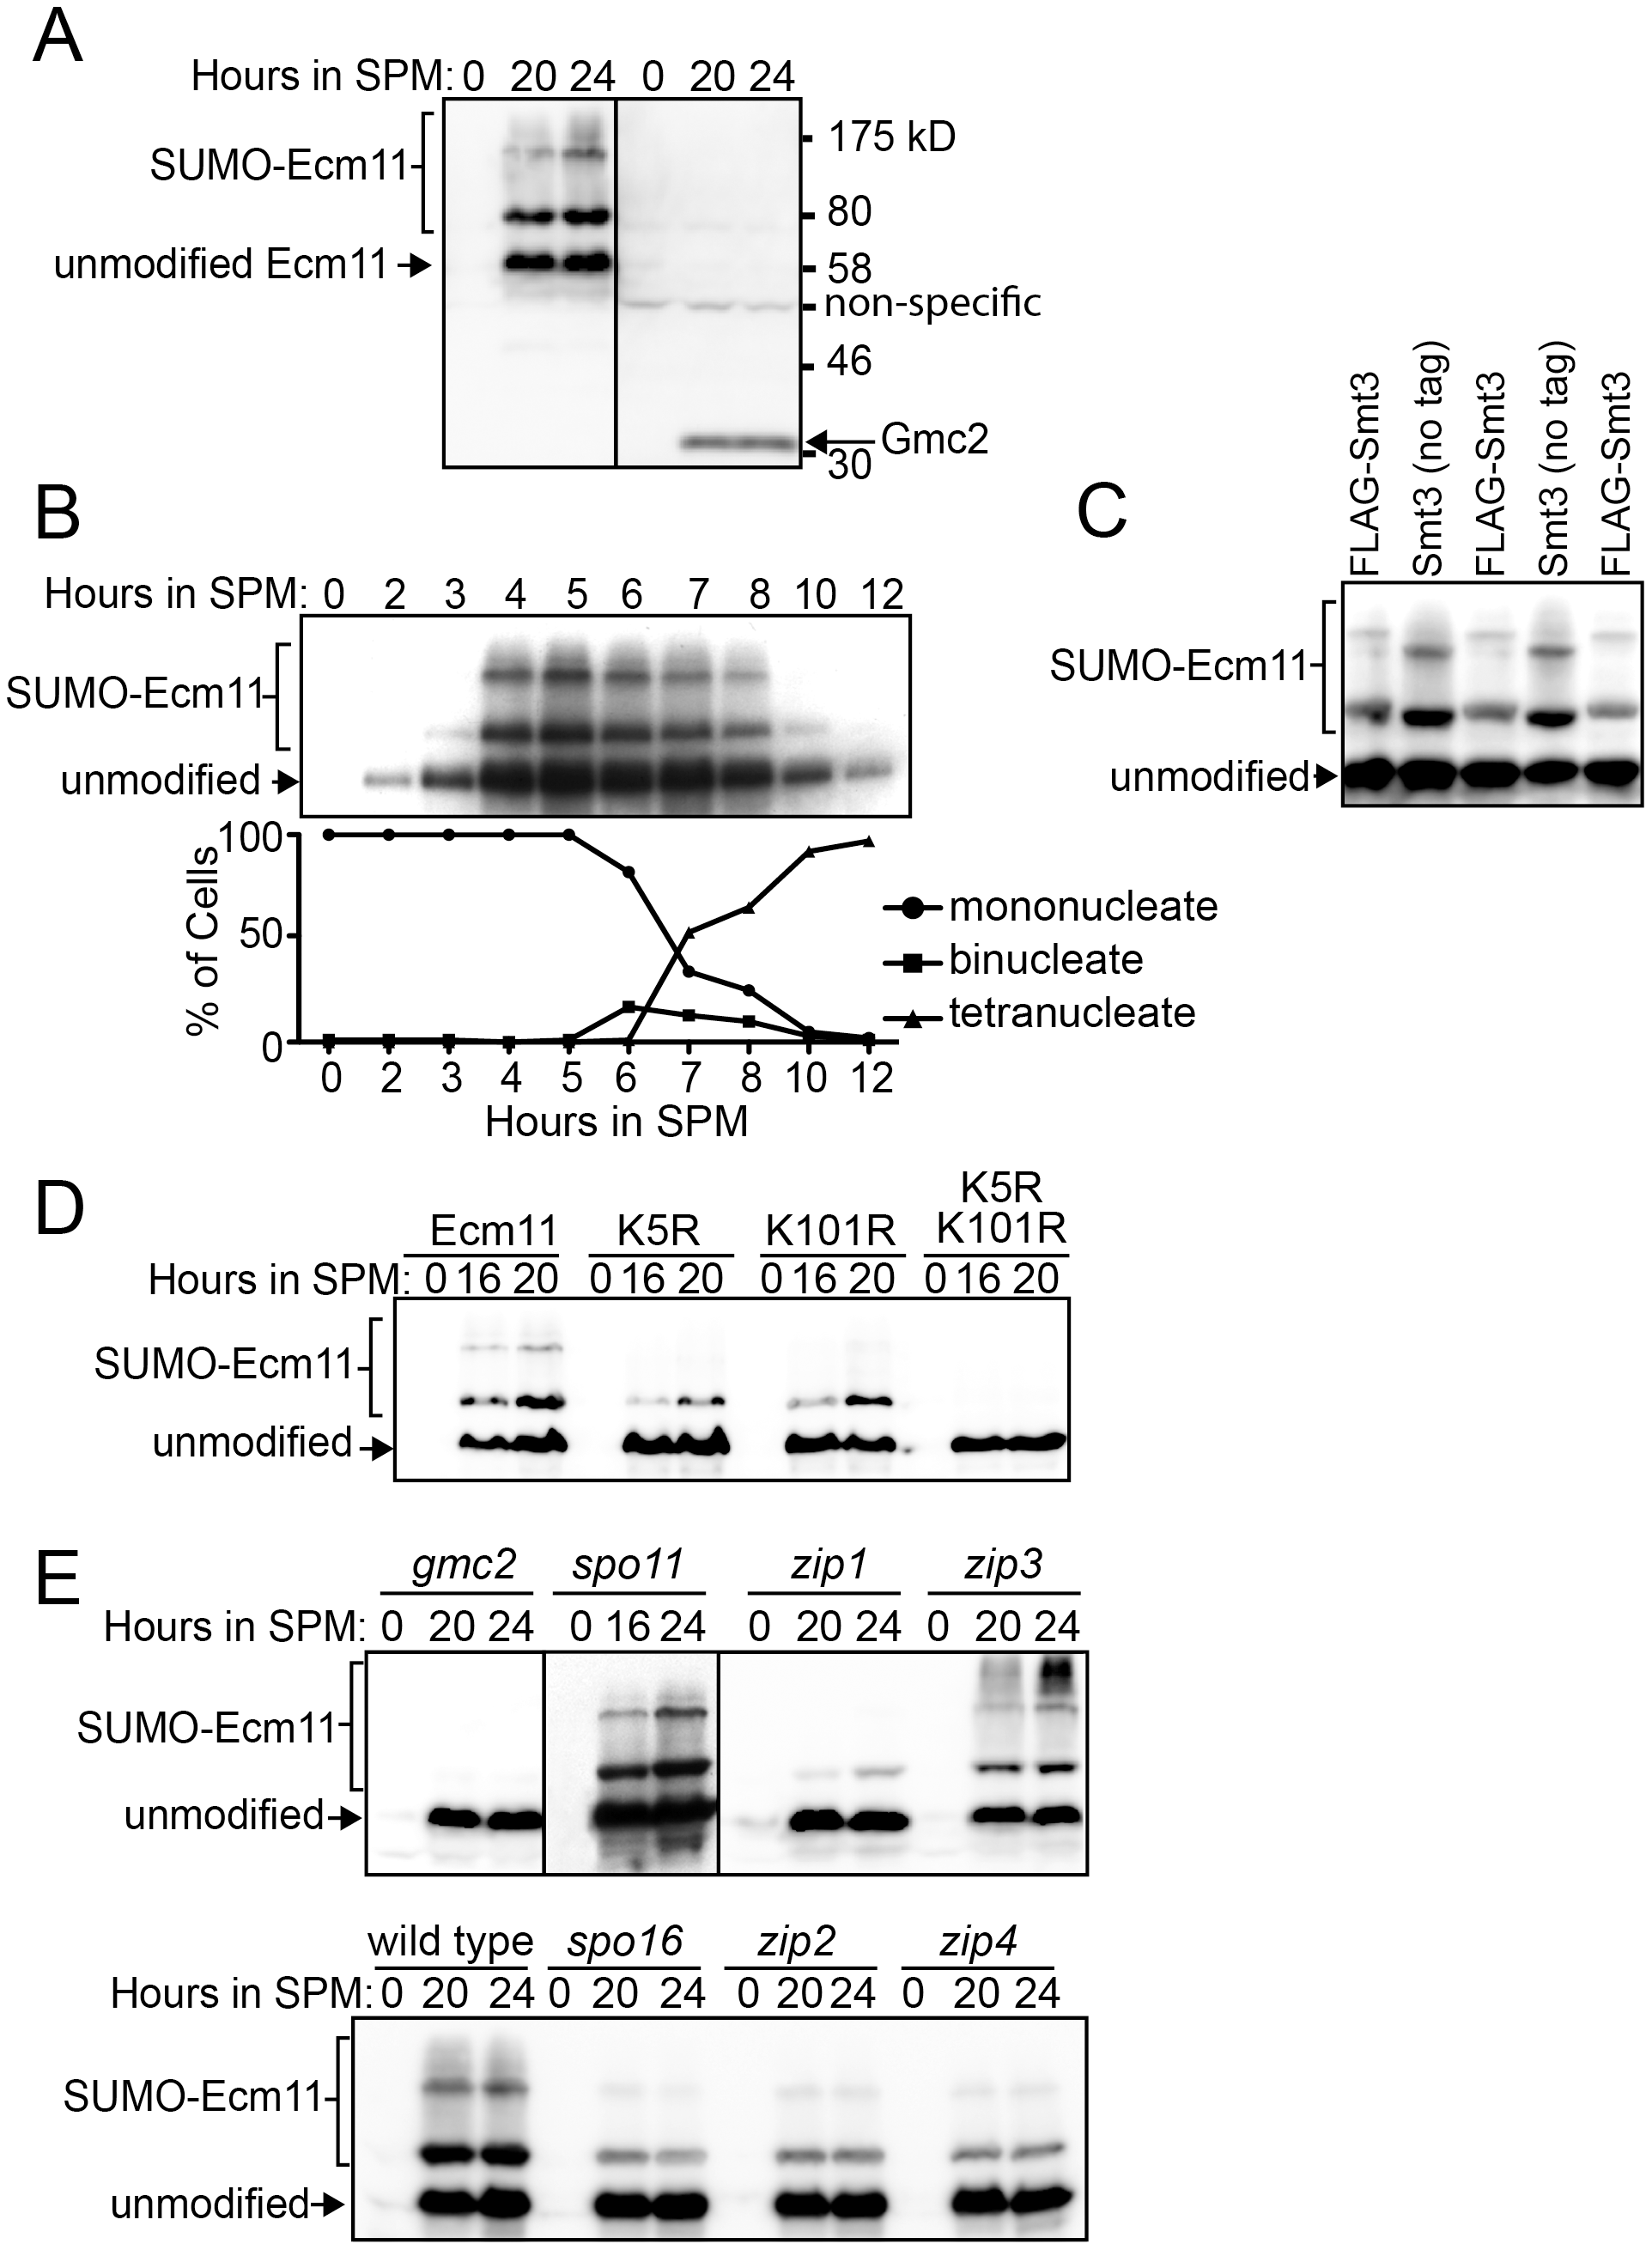 Ecm11 SUMOylation depends on Gmc2 and also partially on Zip1, Zip2, Zip4, and Spo16.